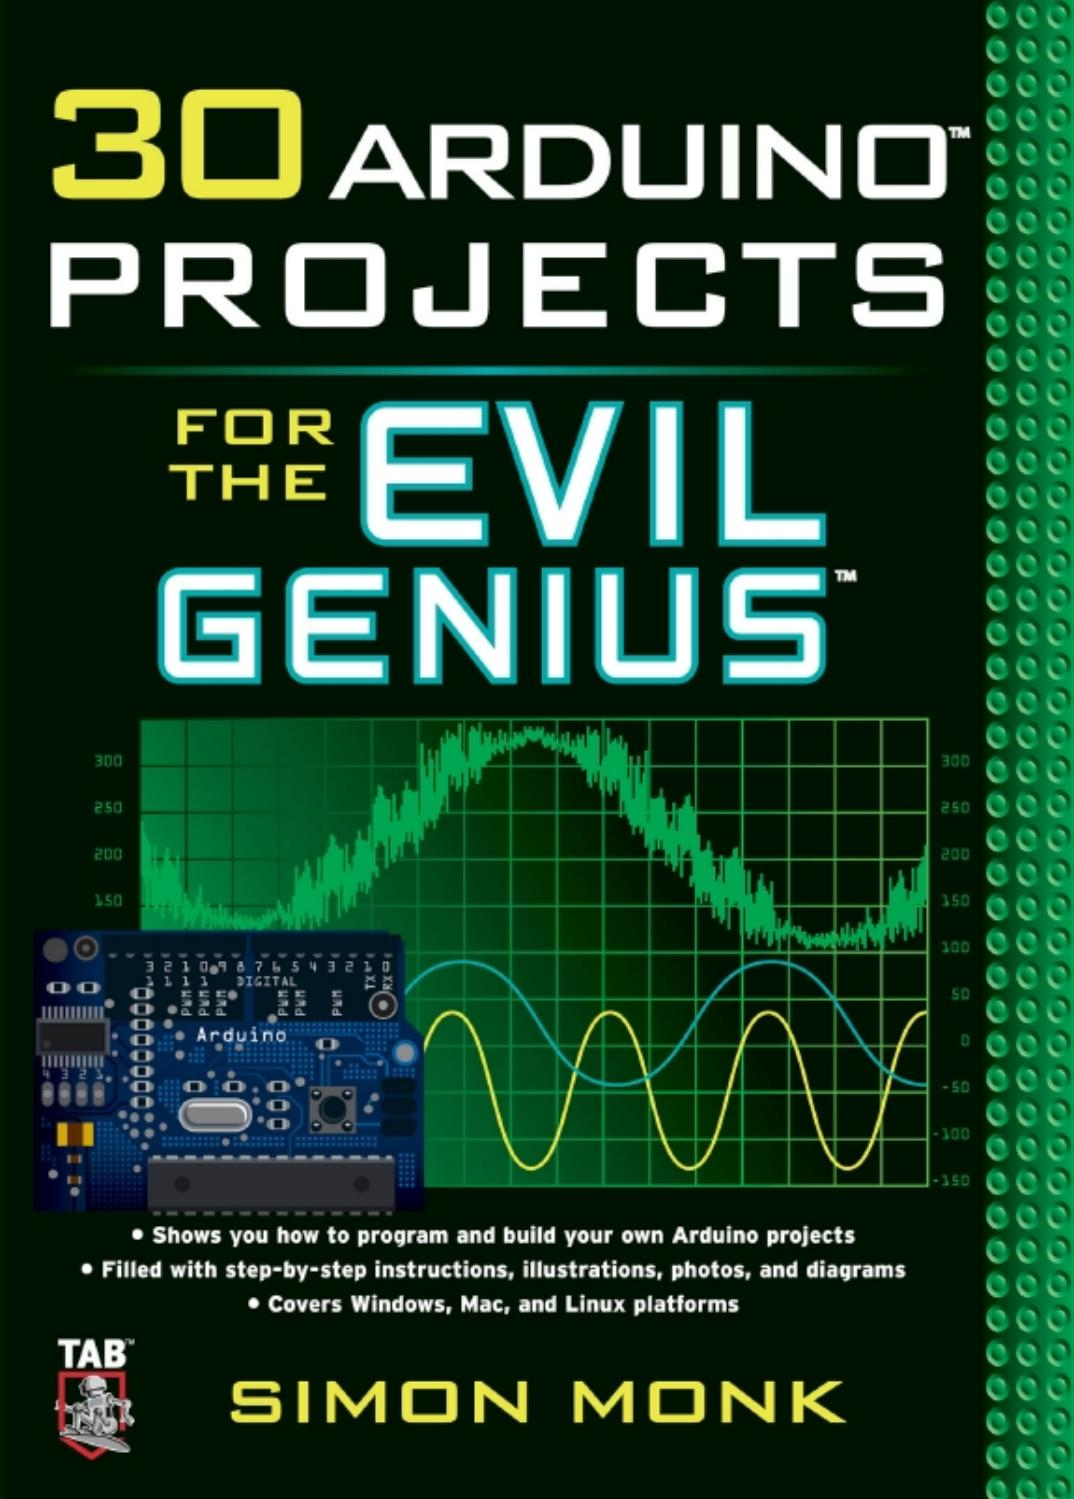 30 Arduino Projects For The Evil Genius By Rodrigo Negrelli Guzzo 10segment Led Bar Graph Circuit With An Issuu